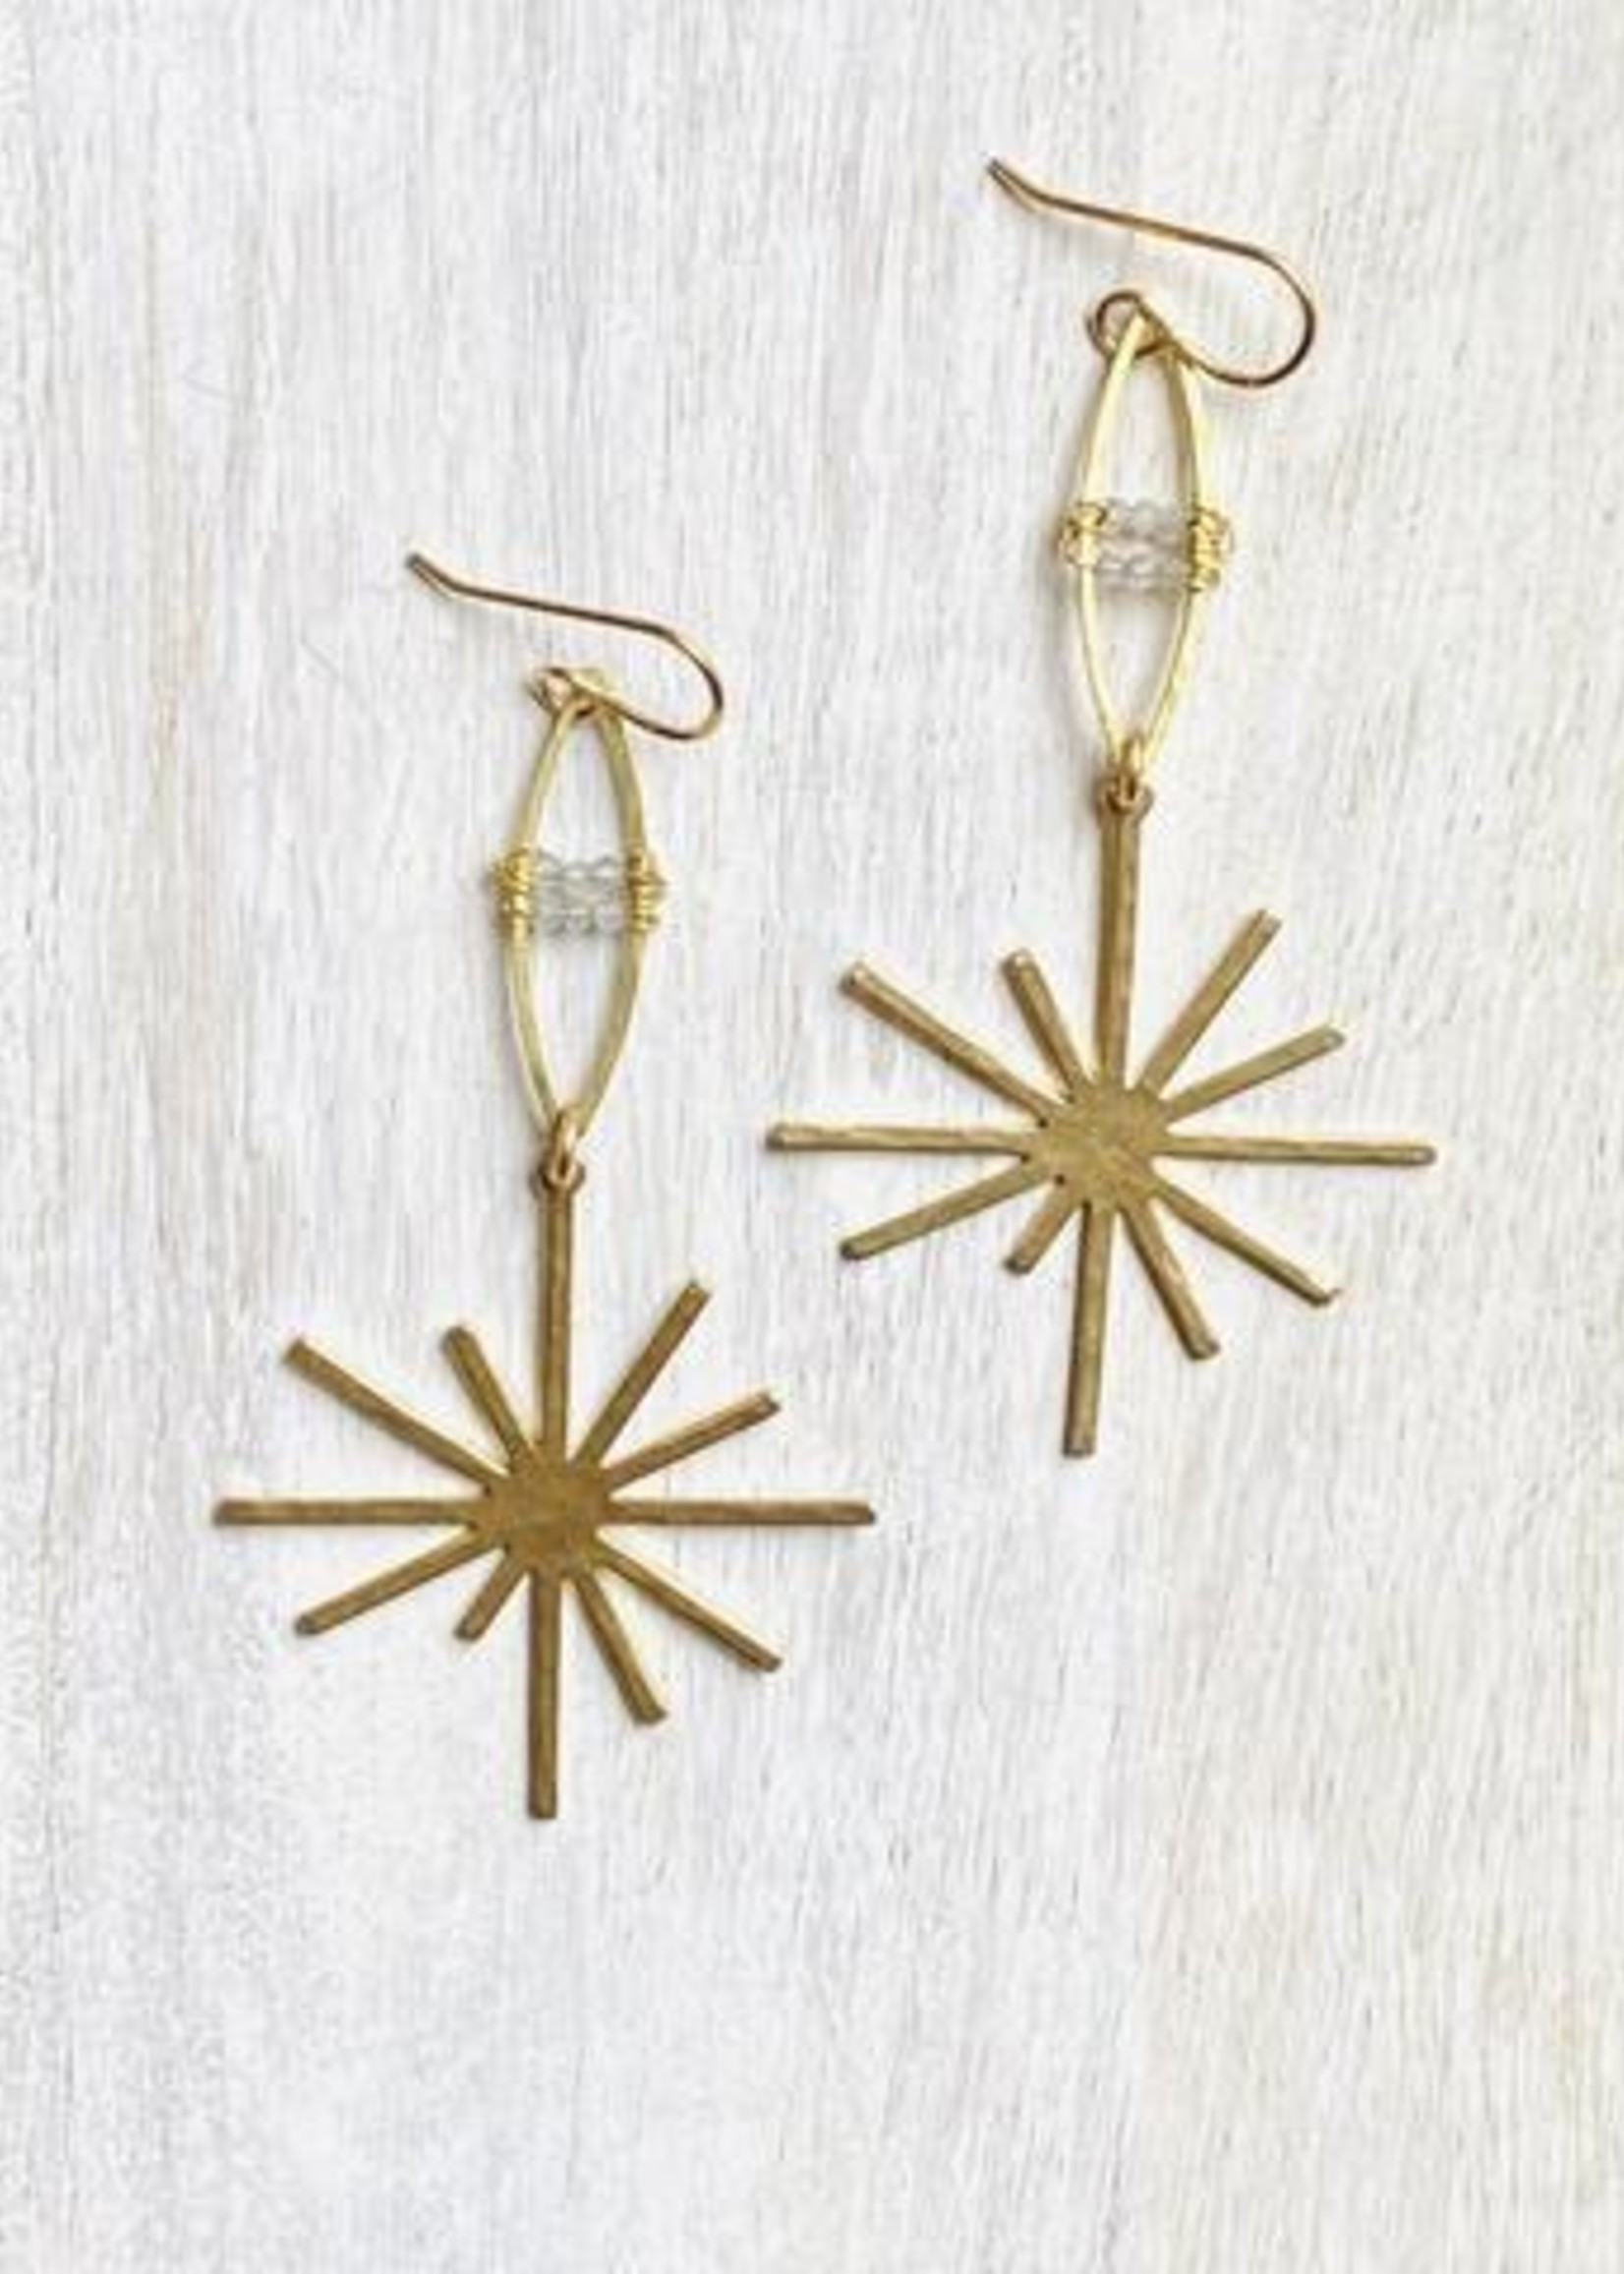 Darby Drake Marquis, Stones Bars & Star Earrings, Brass/Labrodorite